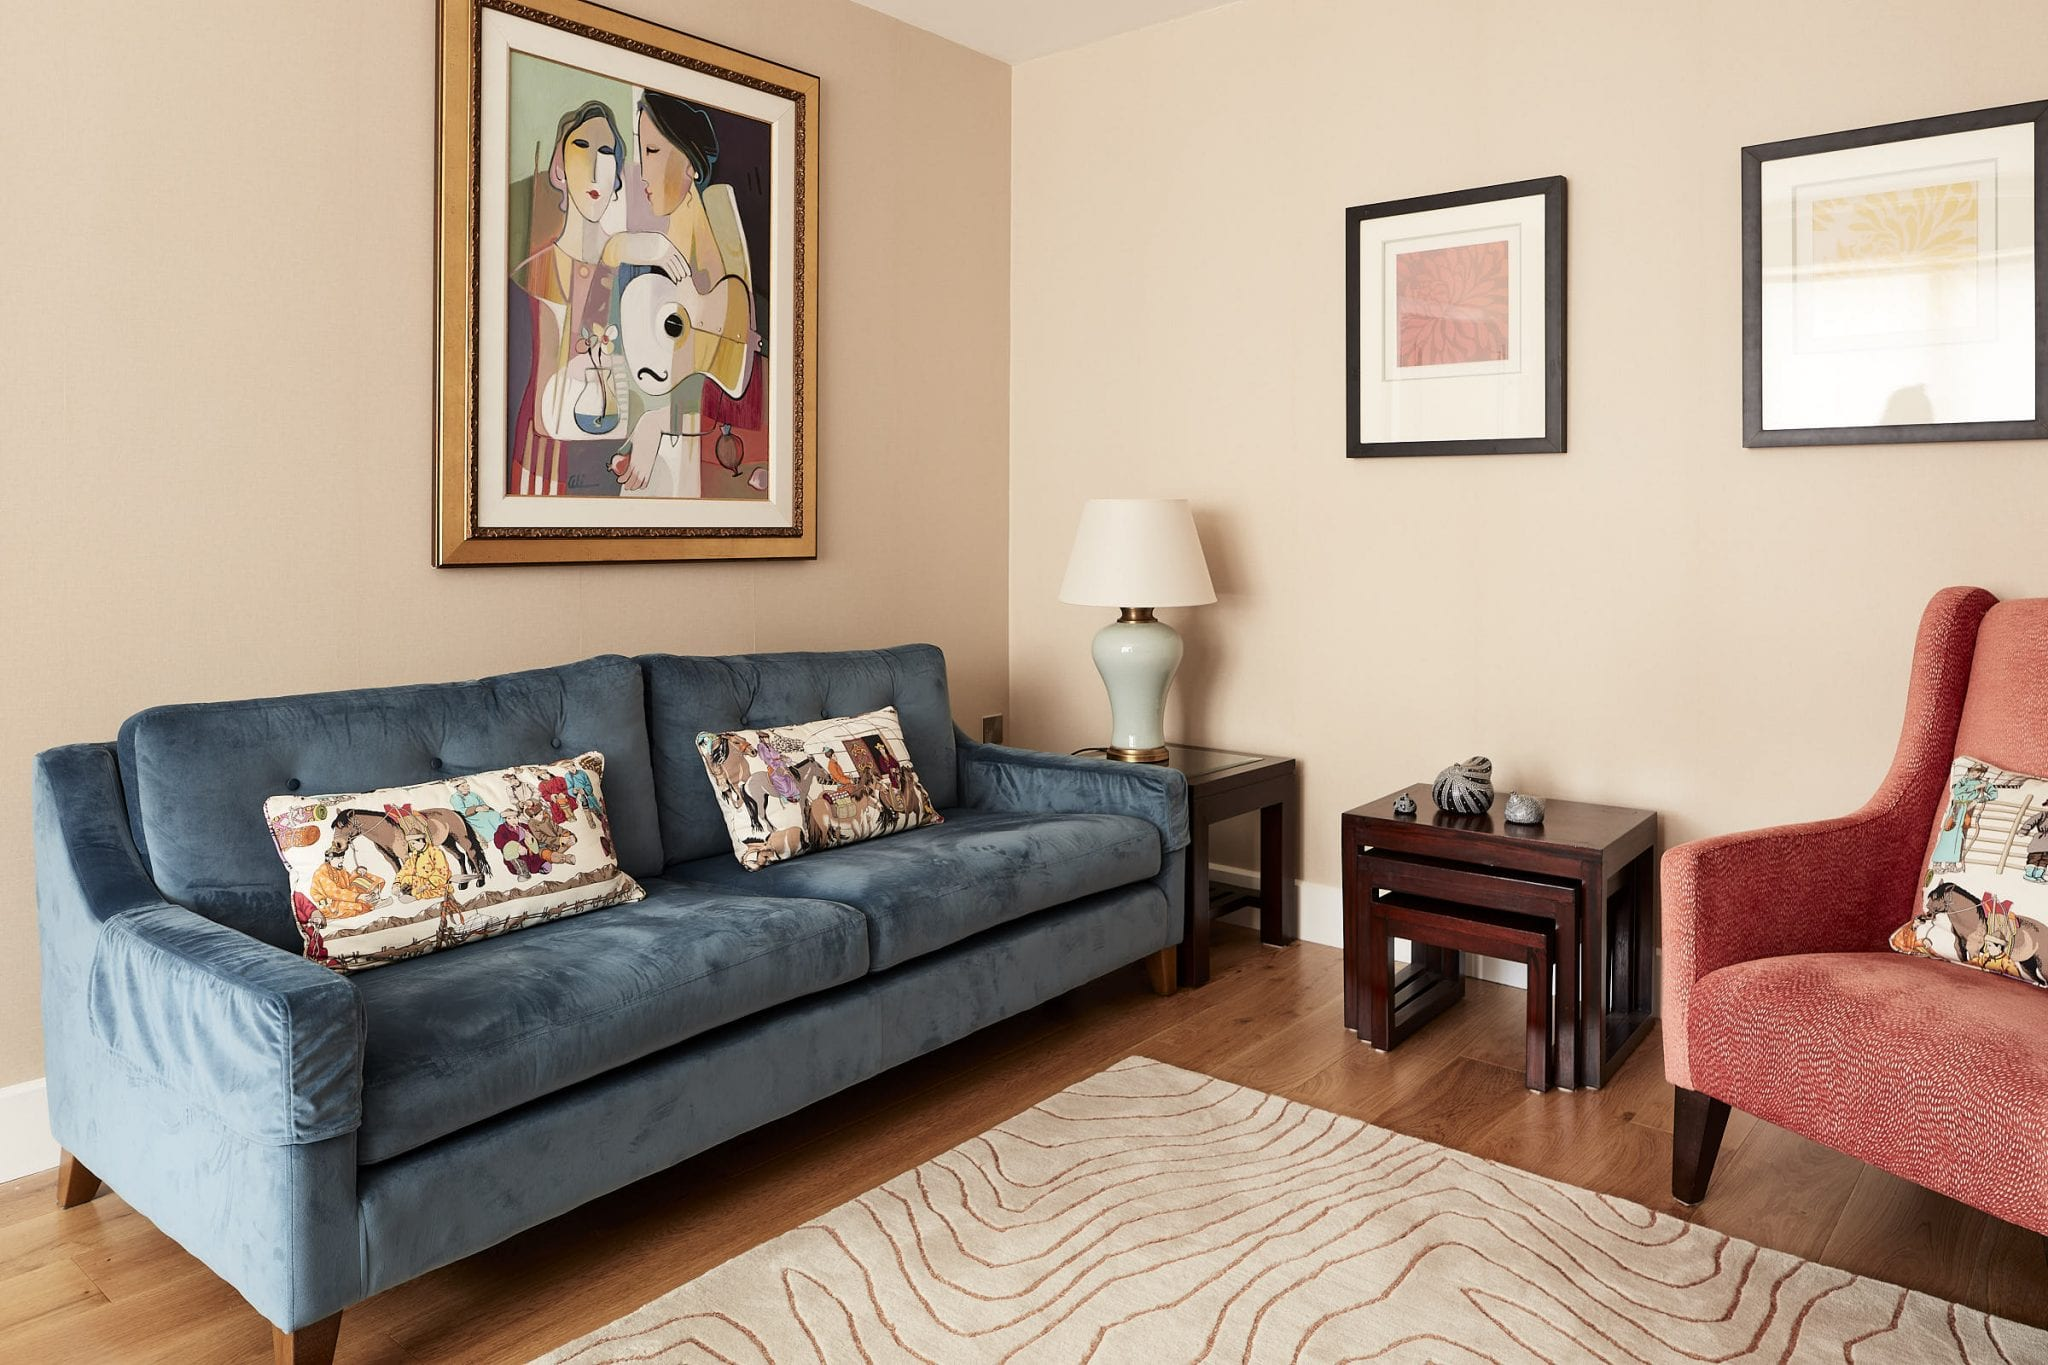 Formal sitting room colour scheme. Couch , armchairs, art, lights, for an interior design project in Dublin 3, Clontarf.